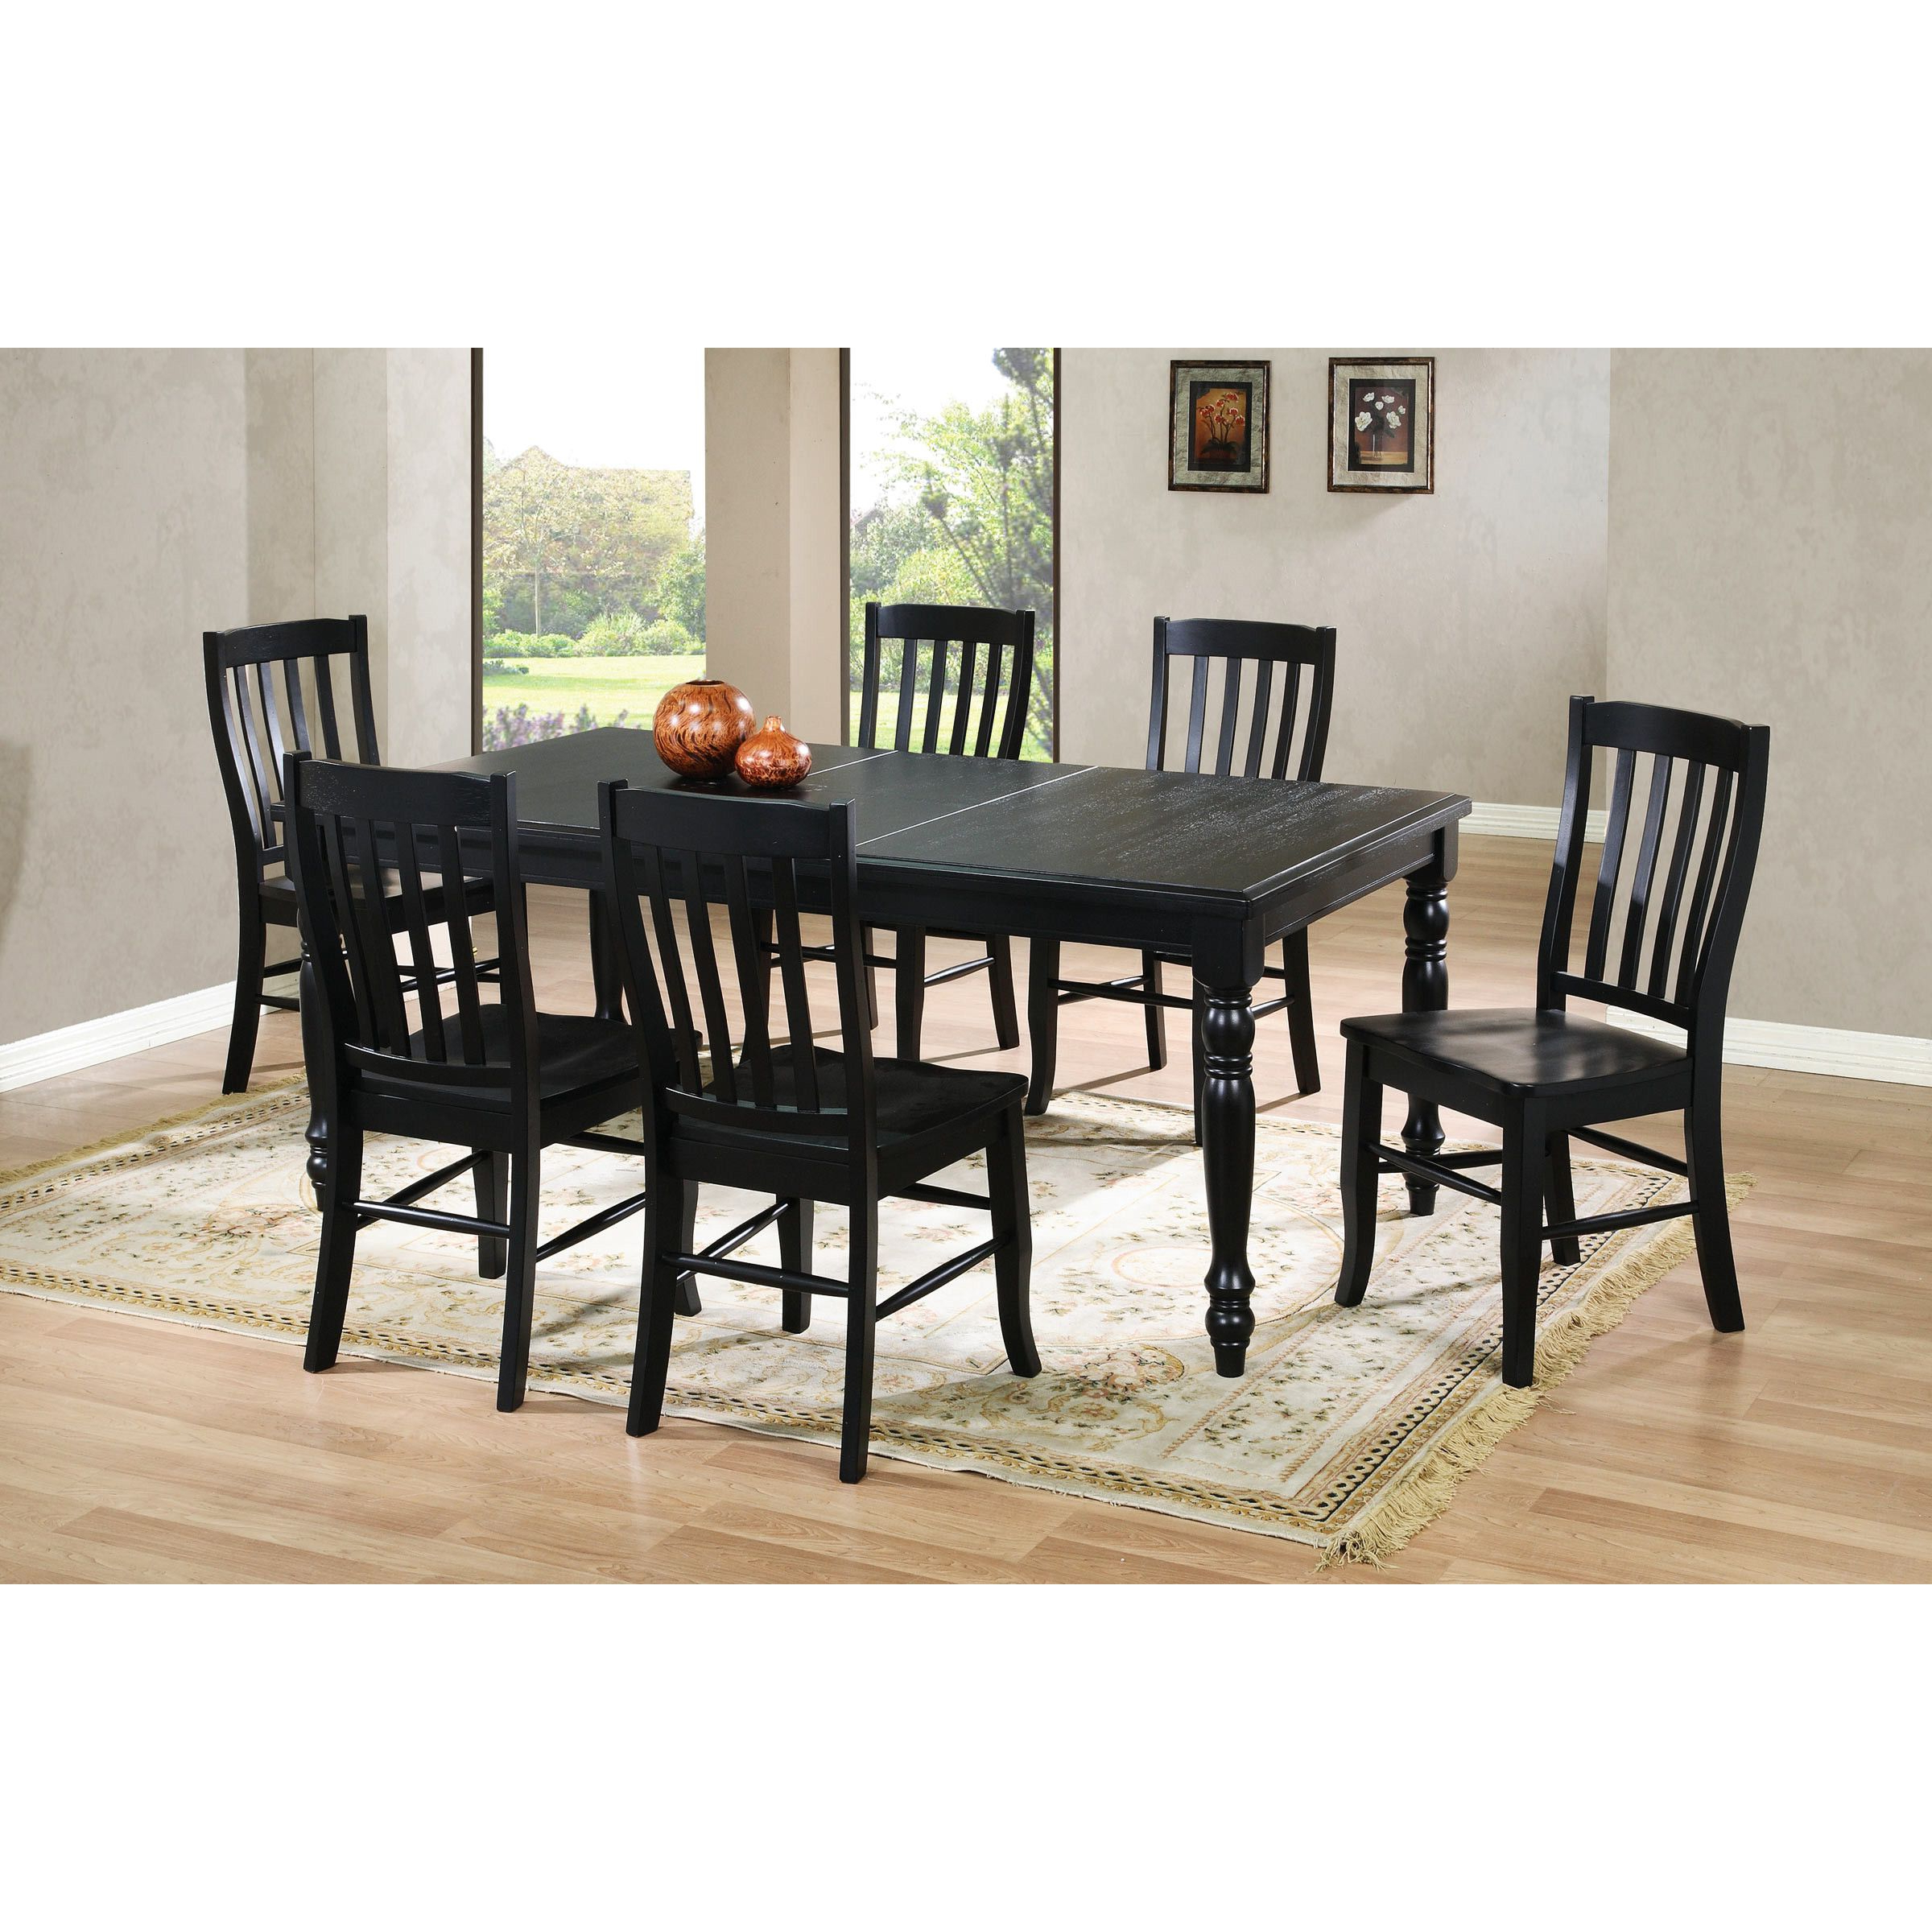 Dining Table, Dining